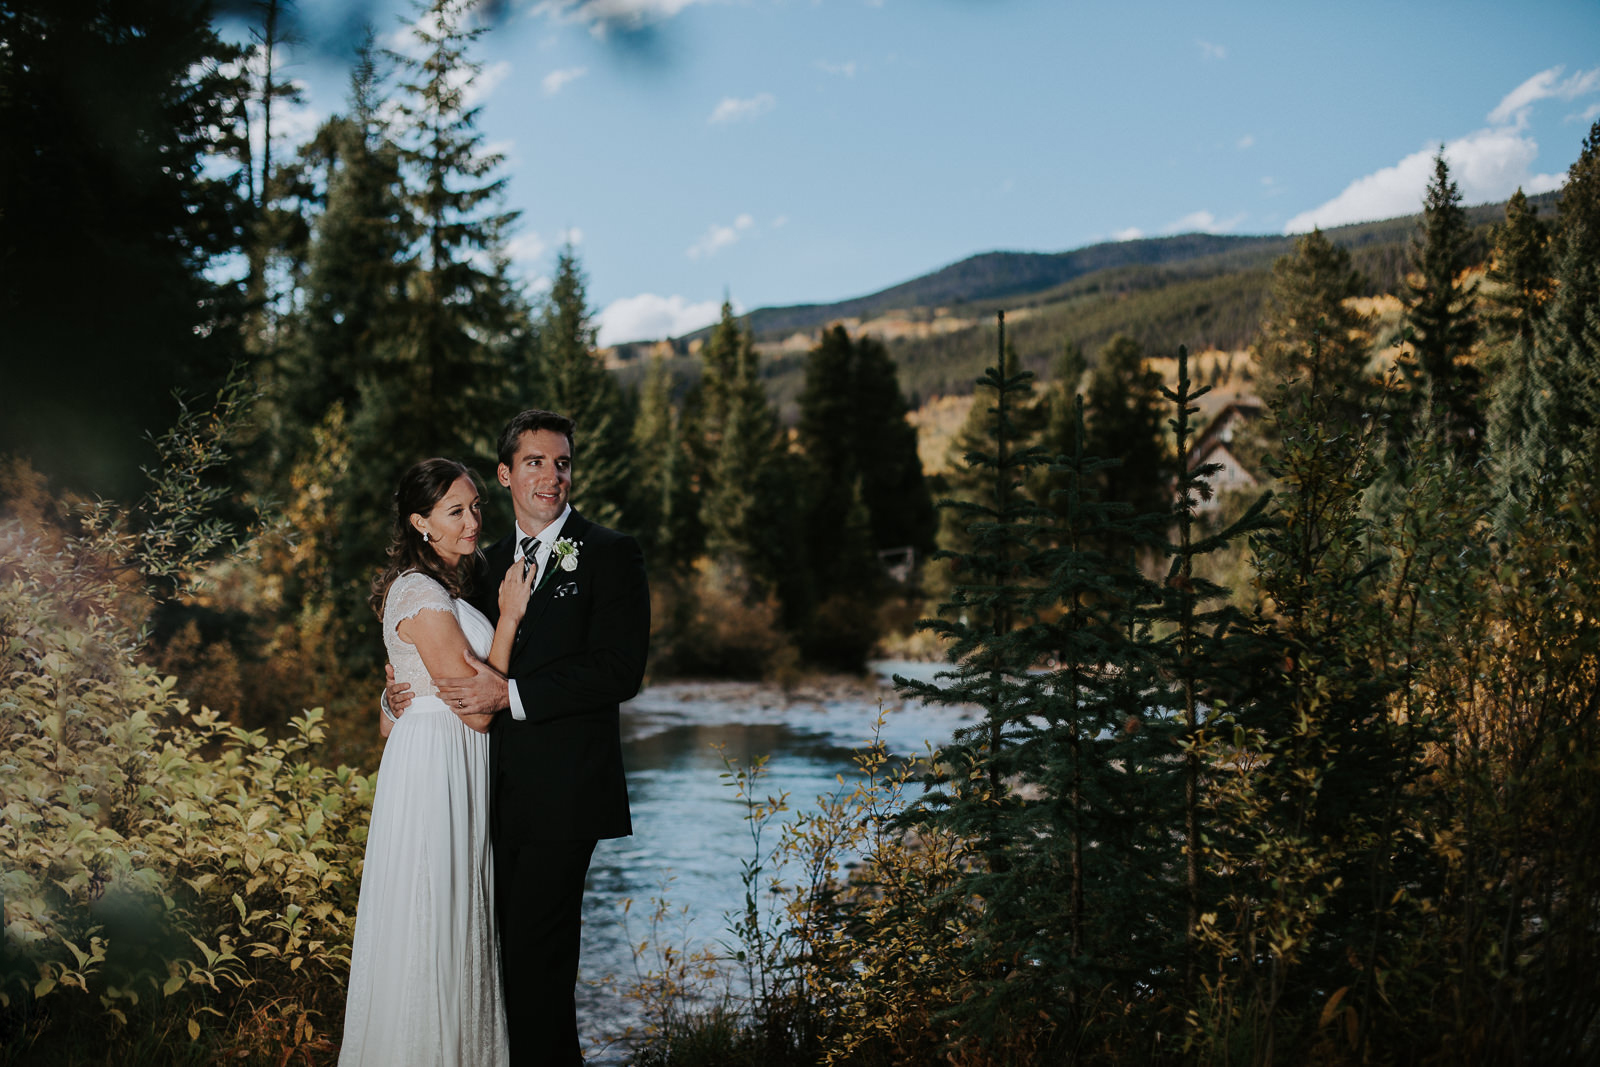 Wedding photography of couple standing along river smiling with a river and mountains behind them